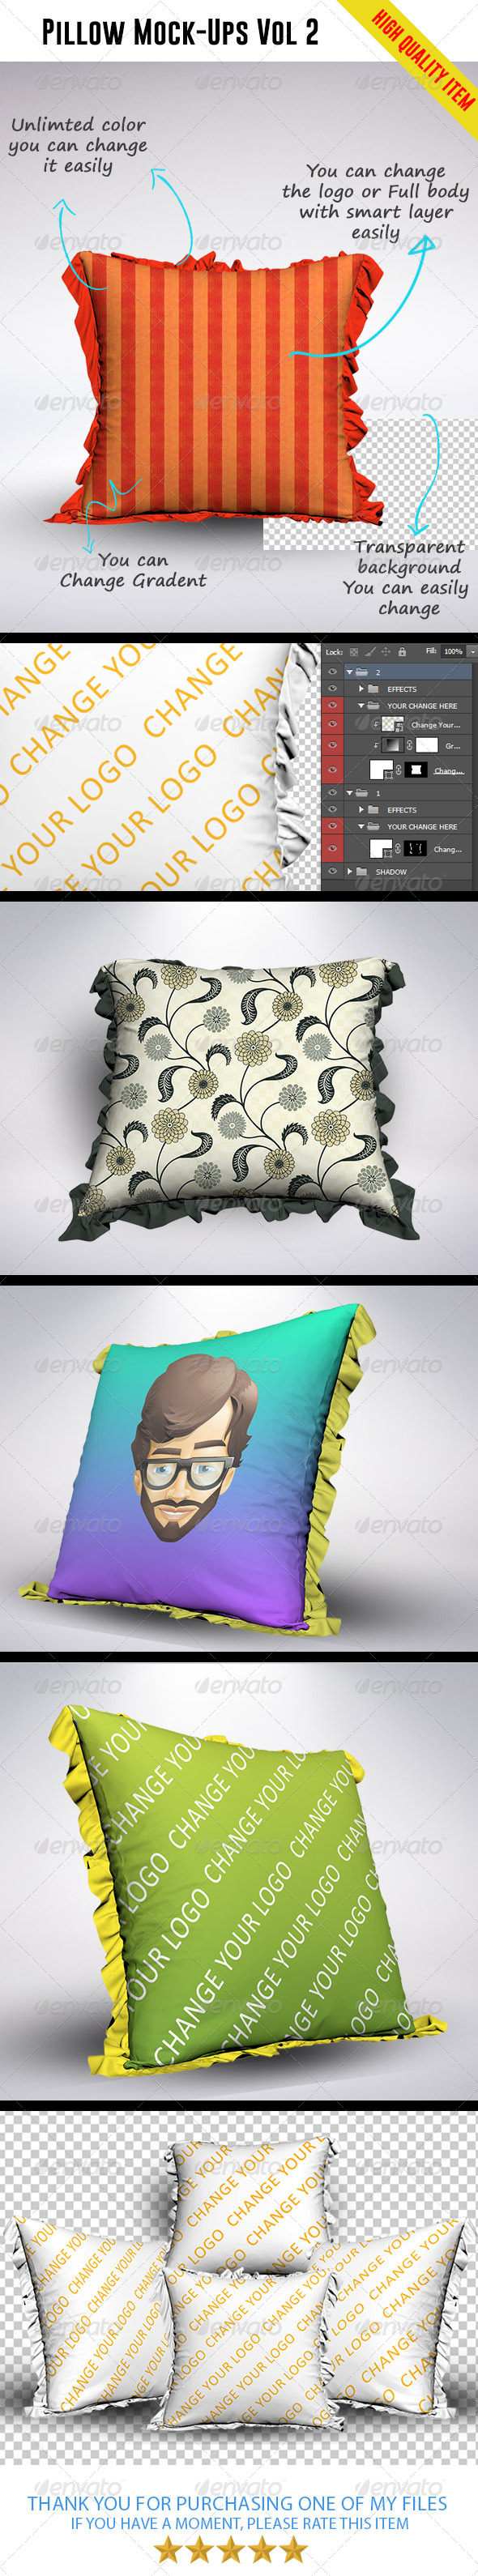 Pillow Mock-Ups Vol 2